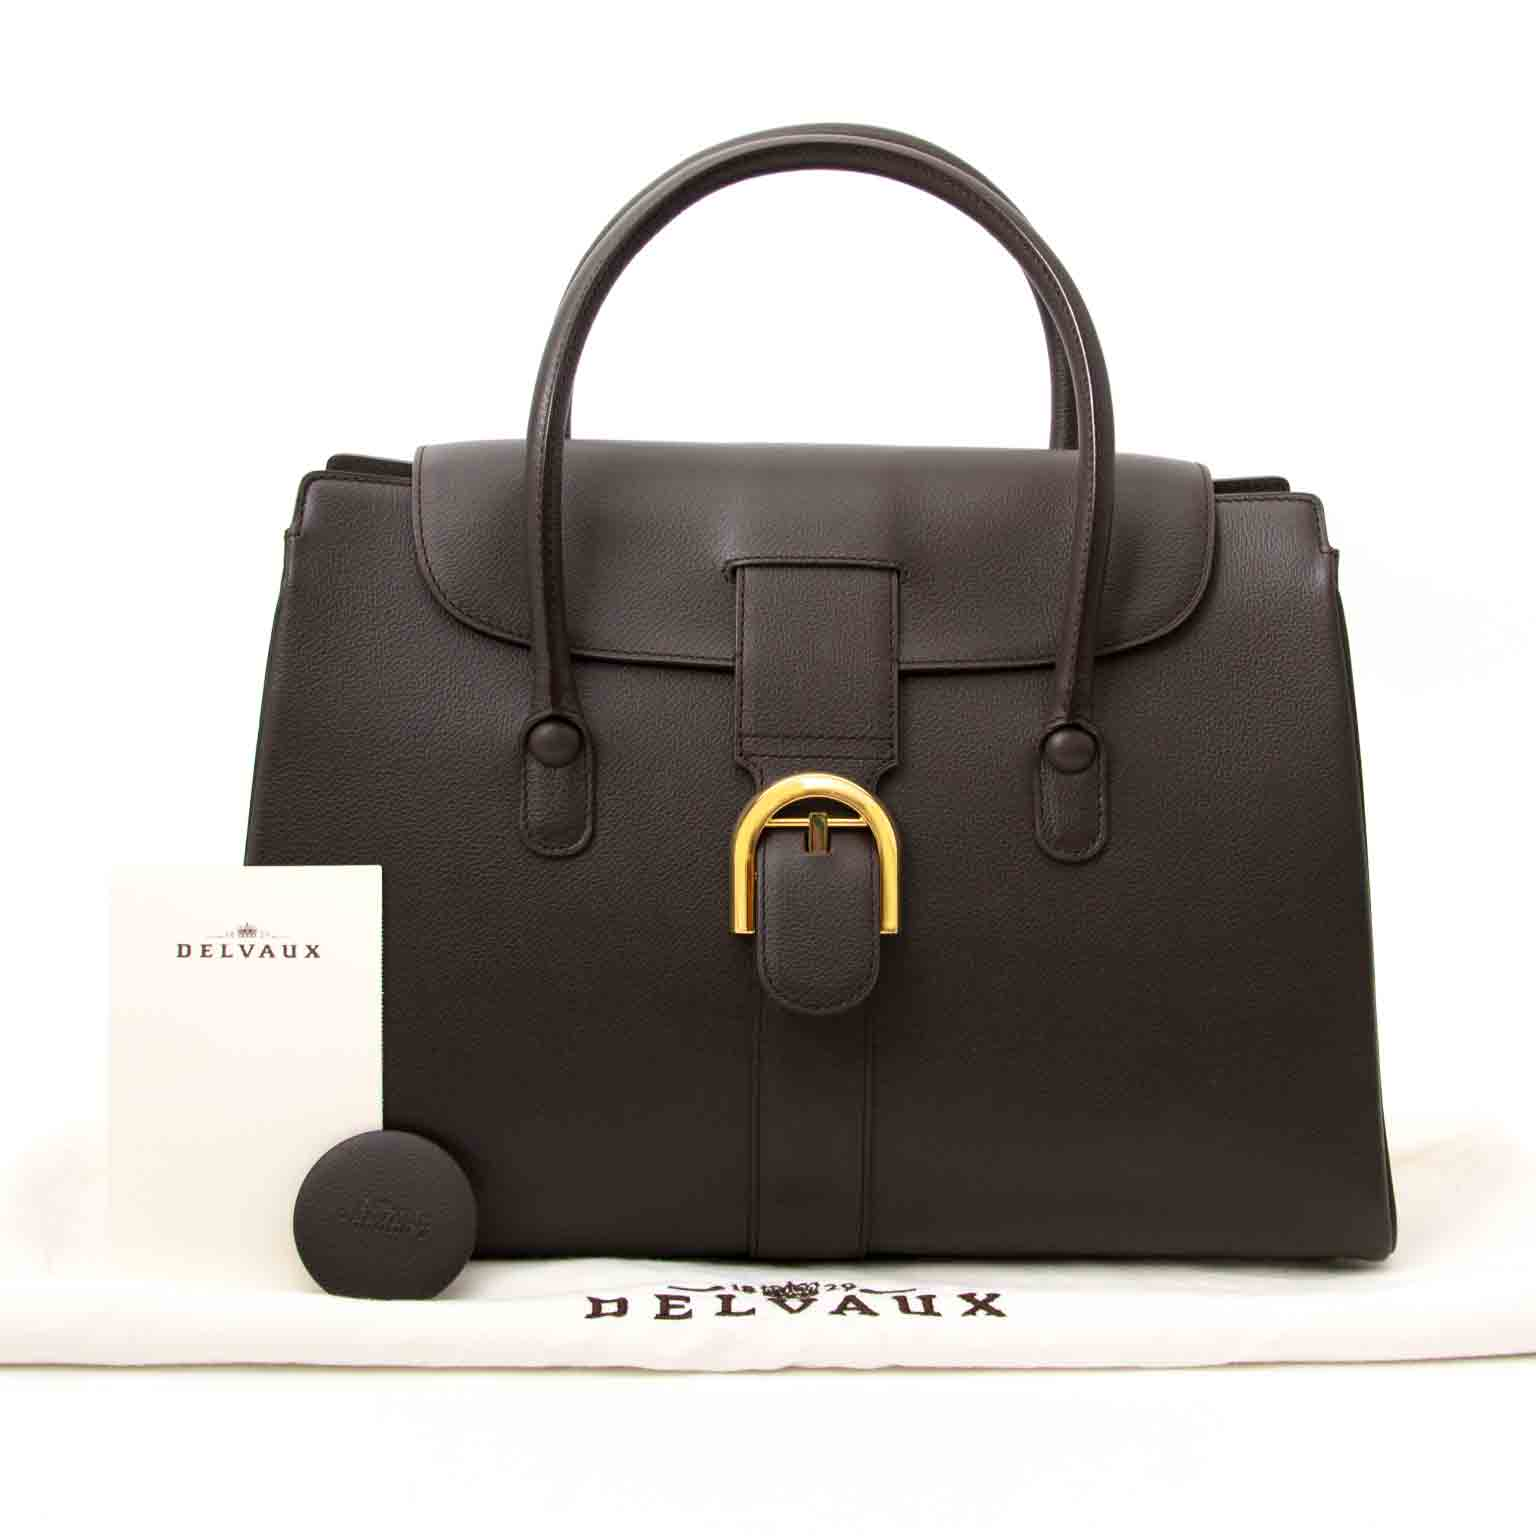 Looking for a Delvaux Brown Cabriolet Bag?